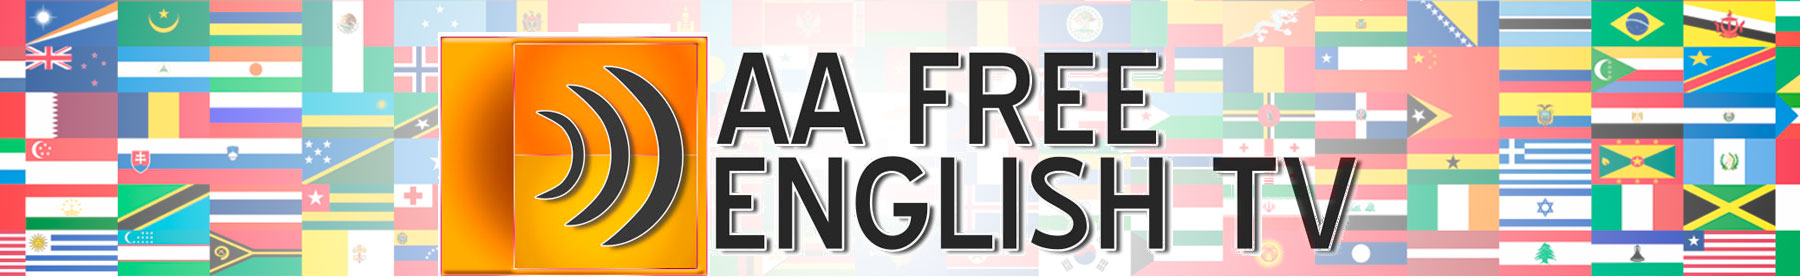 AA Free English TV